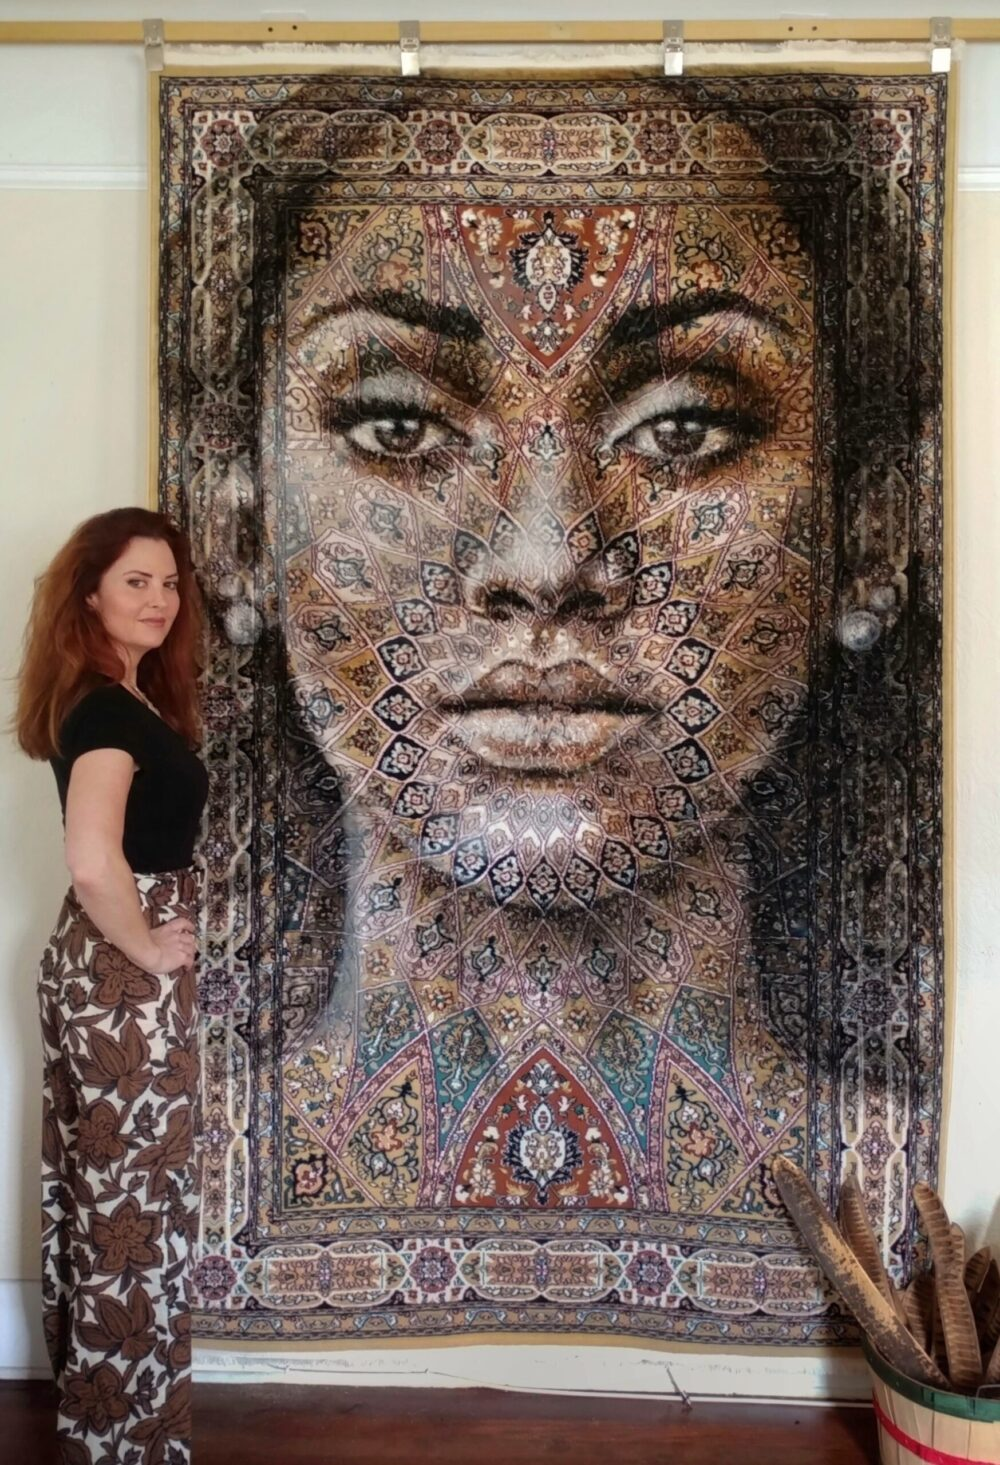 Florencia Clement de Grandprey makes haunting art on intricate rugs